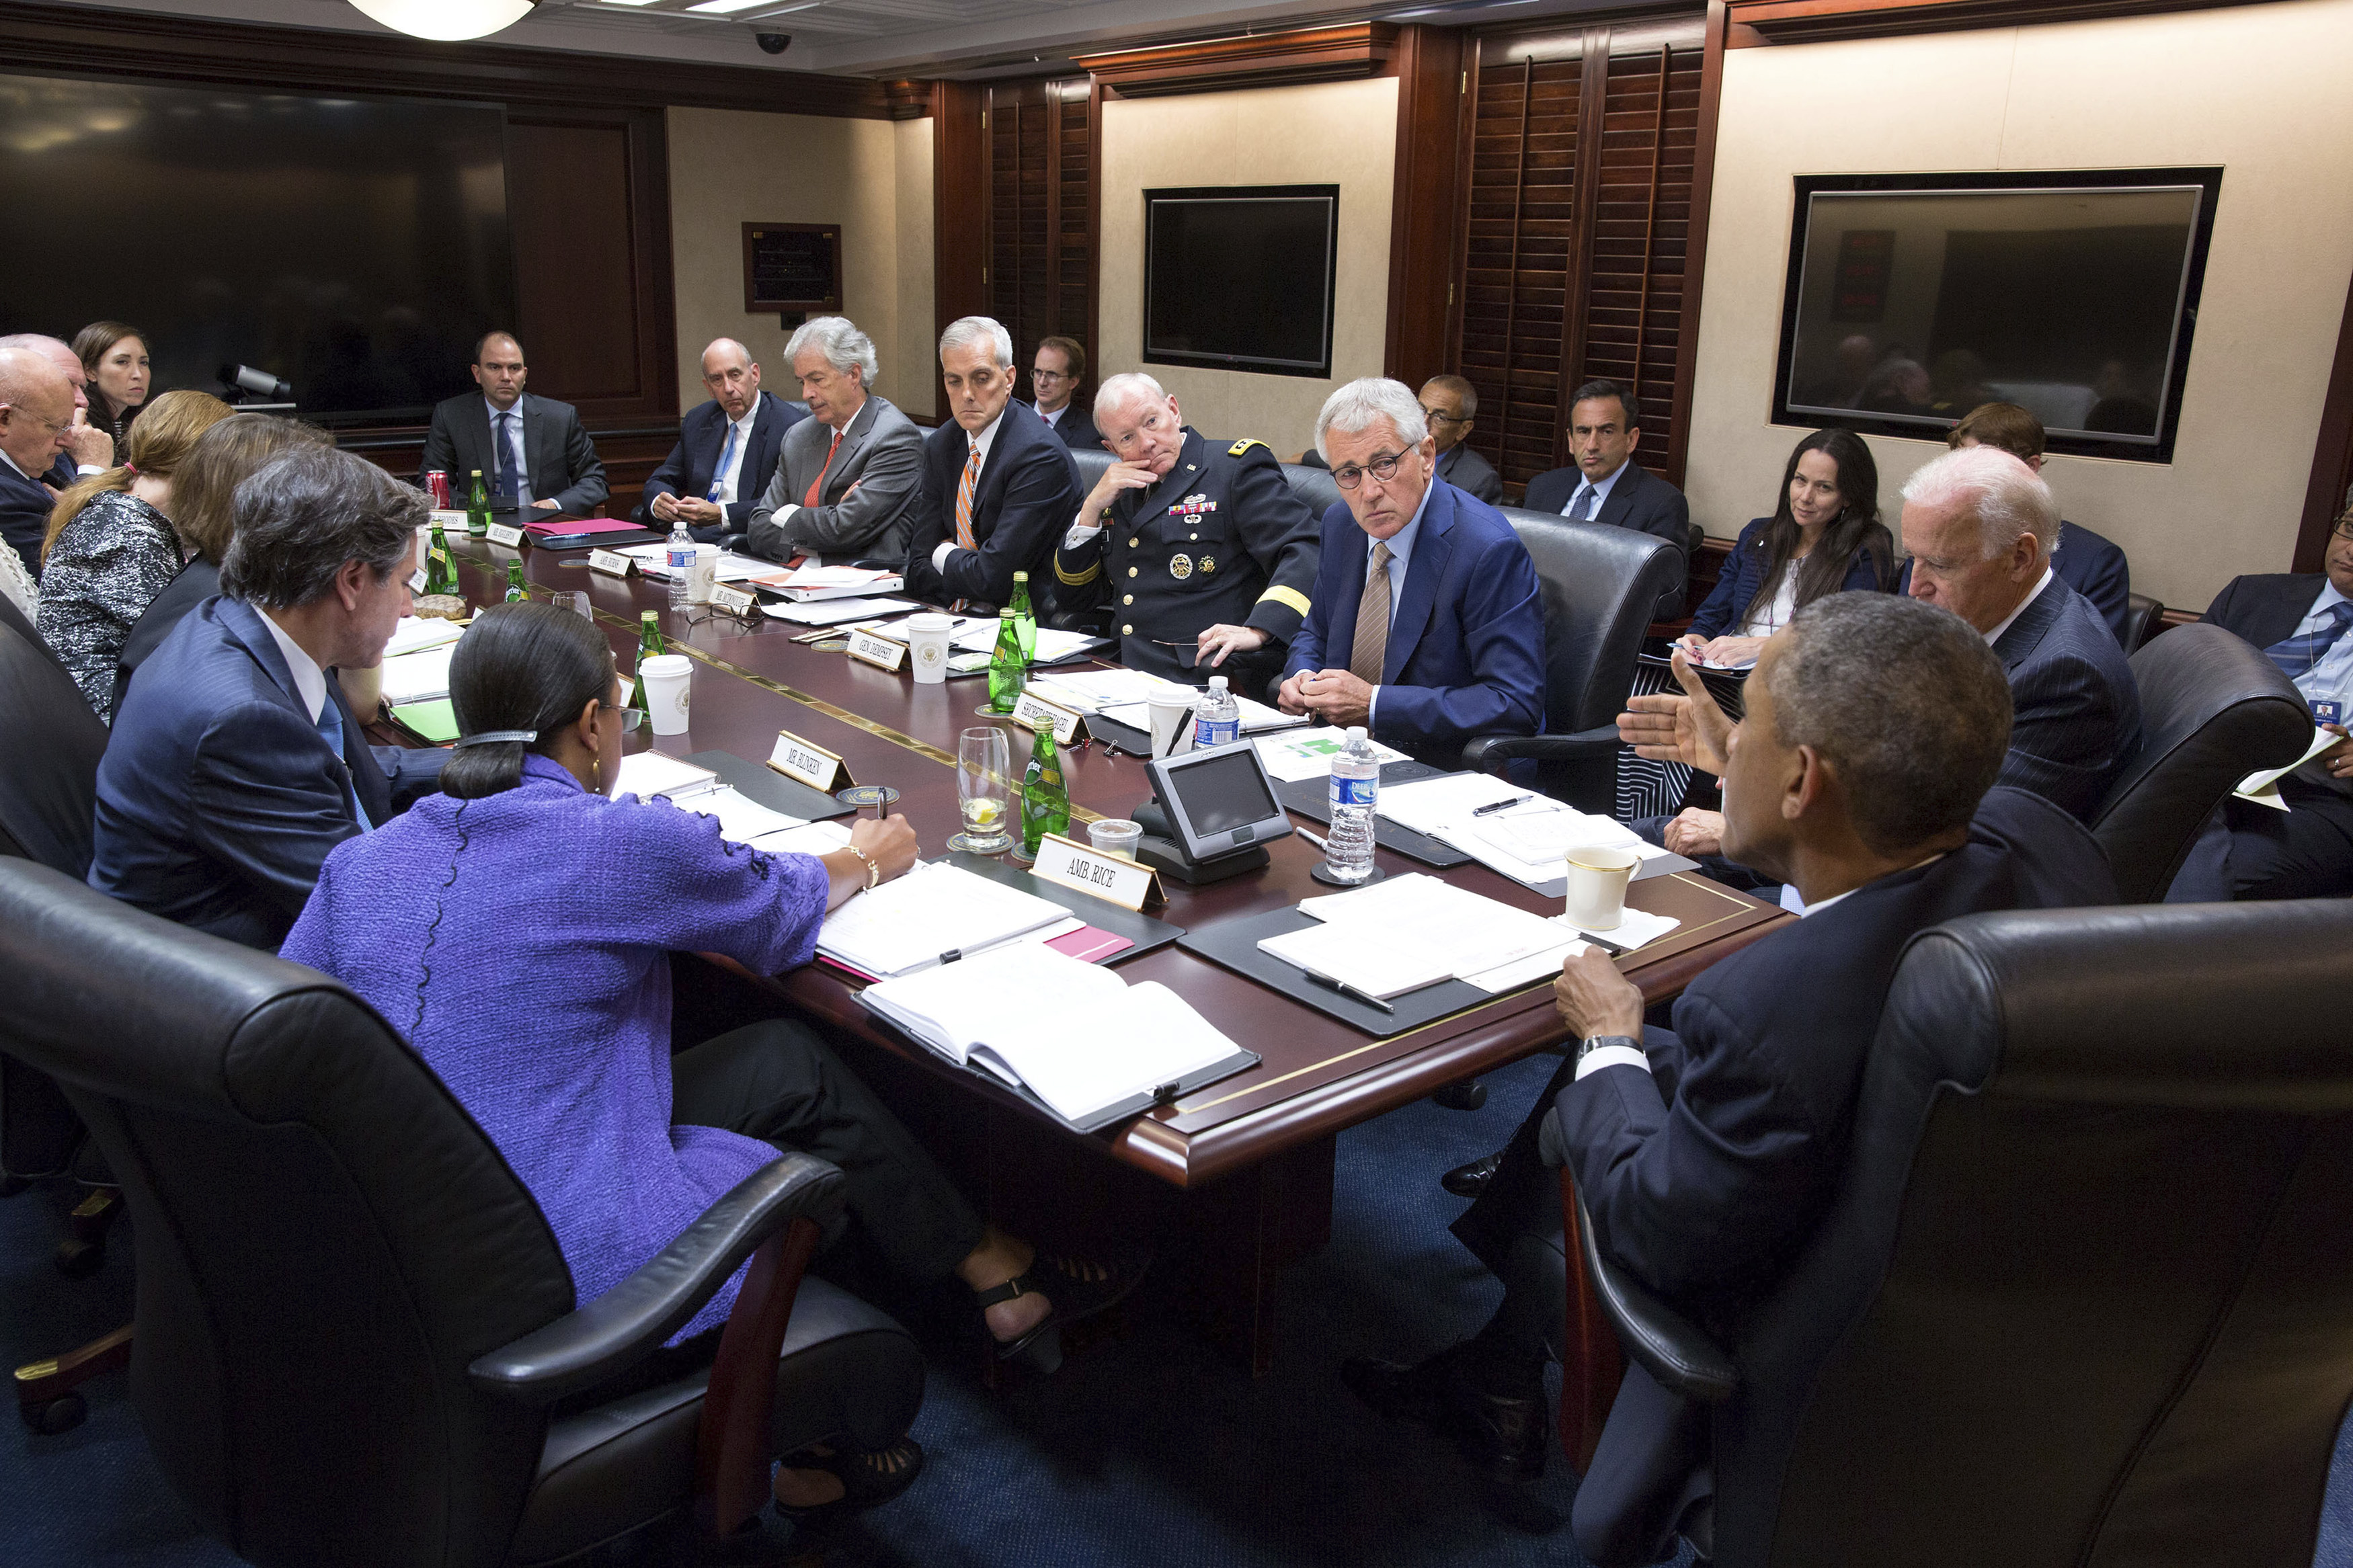 President Barack Obama (2nd R) and Vice President Joe Biden (R) meet with members of the National Security Council in the Situation Room of the White House in Washington September 10, 2014. Obama, who will set out a broad long-term strategy to defeat the Islamic State in a speech to Americans on Wednesday evening, is prepared to authorize air strikes against the group in Syria, U.S. officials said. REUTERS/The White House/Pete Souza/Handout via Reuters (UNITED STATES - Tags: POLITICS) THIS IMAGE HAS BEEN SUPPLIED BY A THIRD PARTY. IT IS DISTRIBUTED, EXACTLY AS RECEIVED BY REUTERS, AS A SERVICE TO CLIENTS. FOR EDITORIAL USE ONLY. NOT FOR SALE FOR MARKETING OR ADVERTISING CAMPAIGNS - RTR45QKO